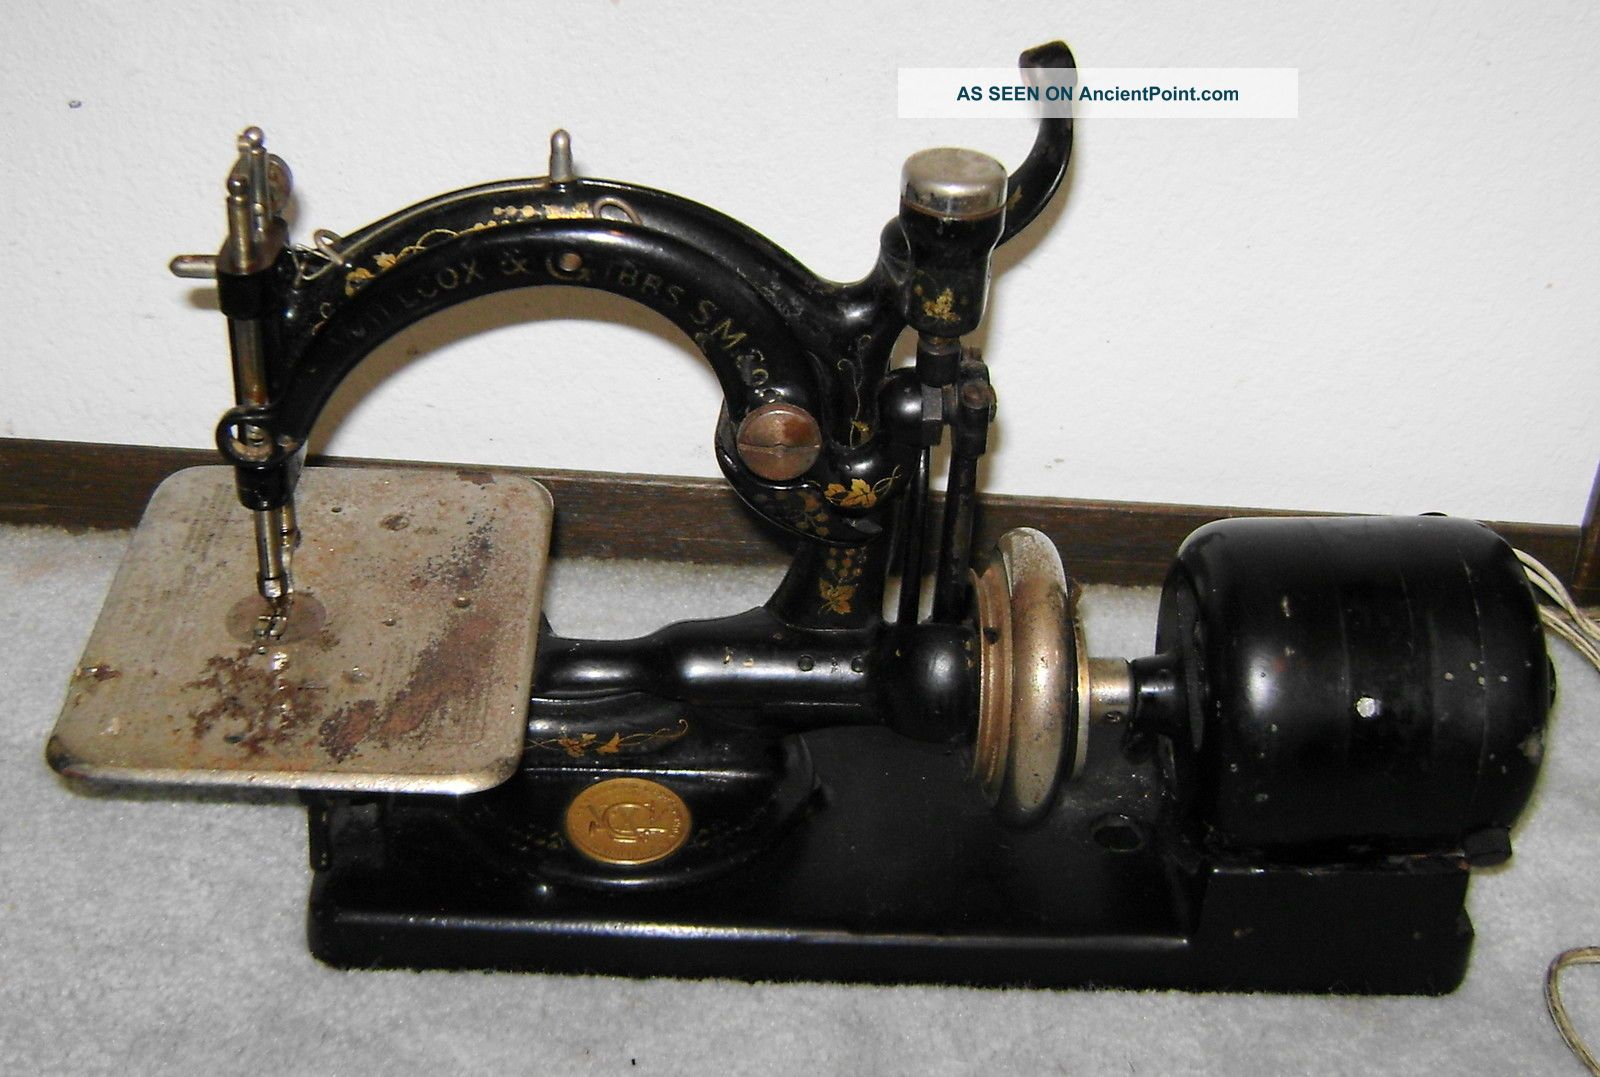 Antique Willcox & Gibbs Sewing Machine - Table Top - Vintage Black Sewing Machines photo